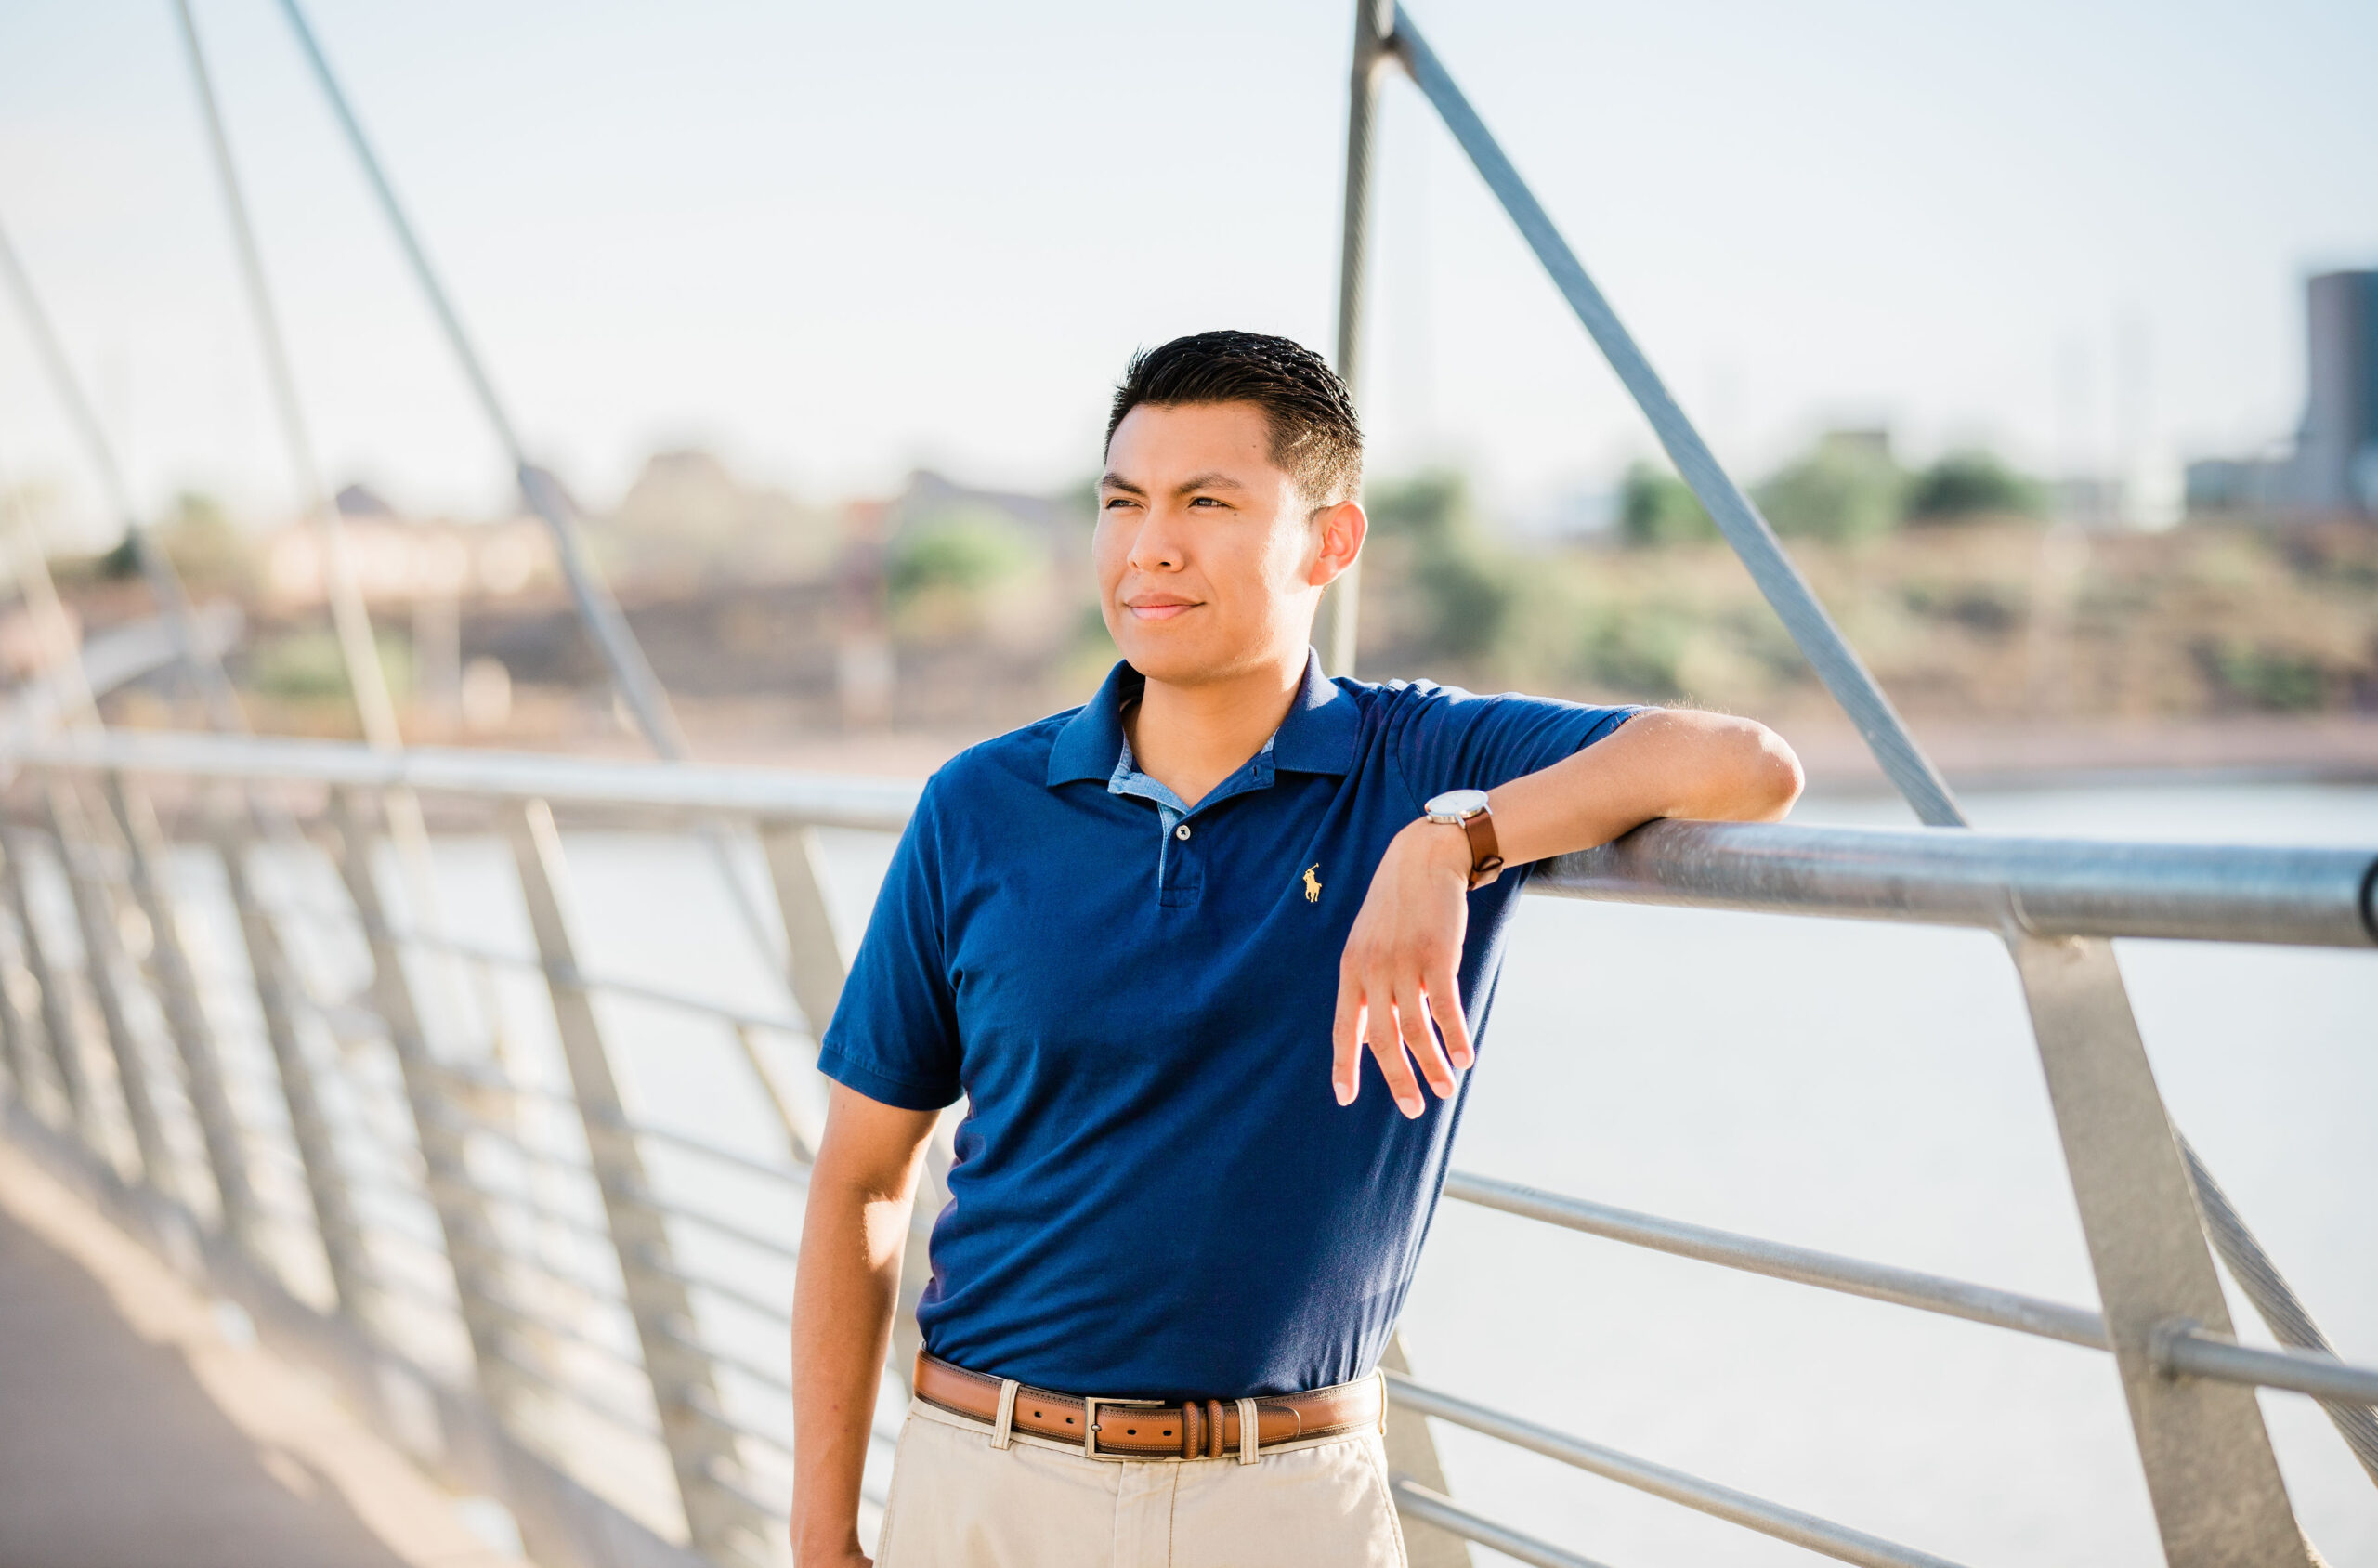 Downtown Tempe Lake Arizona Senior Photography Prickly Pear Photography